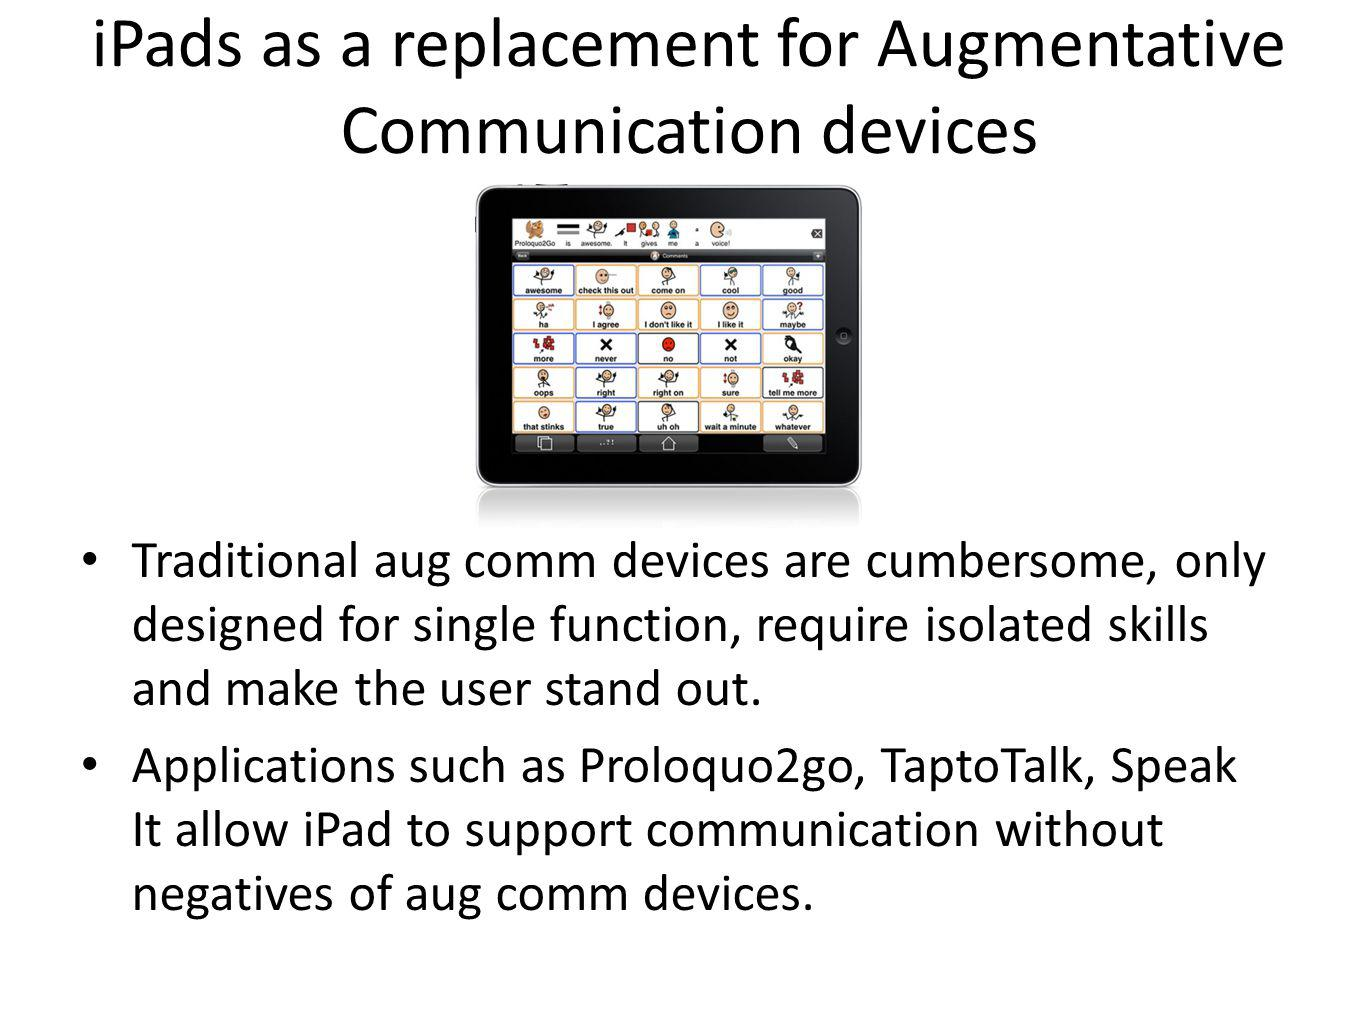 iPads as a replacement for Augmentative Communication devices Traditional aug comm devices are cumbersome, only designed for single function, require